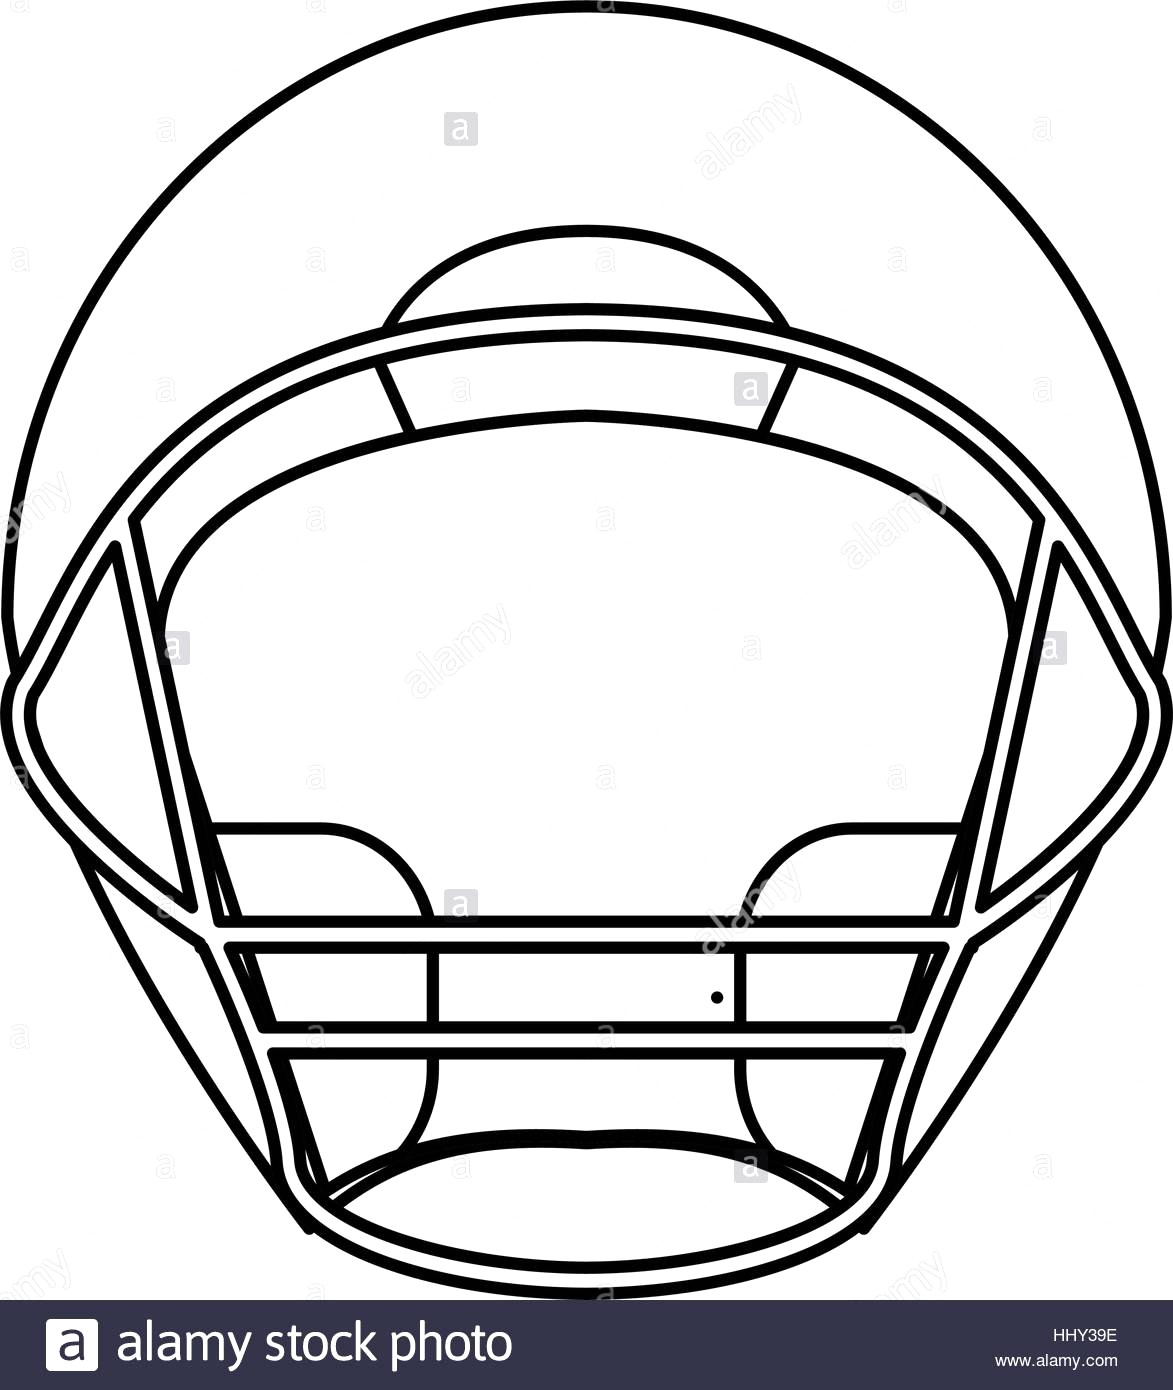 1173x1390 Football Helmet Outline